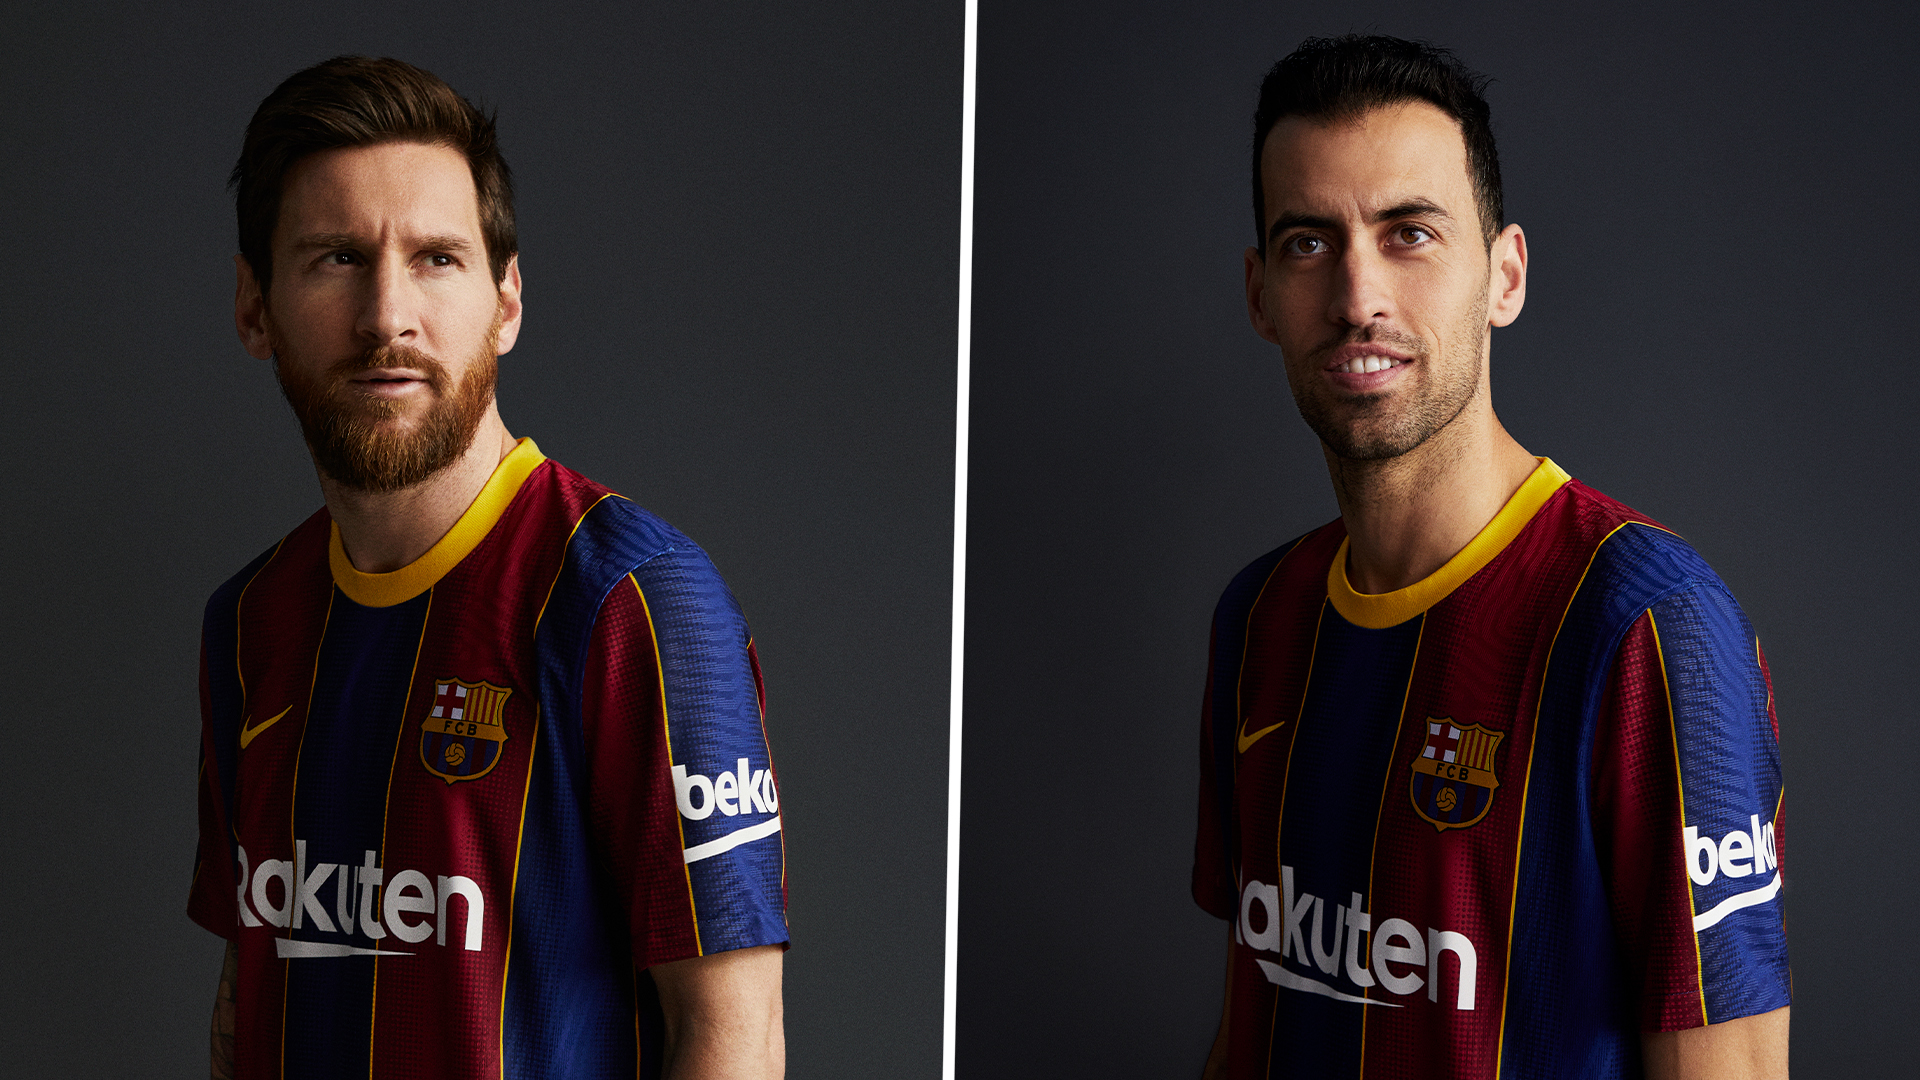 barcelona s 2020 21 kit new home and away jersey styles and release dates goal com barcelona s 2020 21 kit new home and